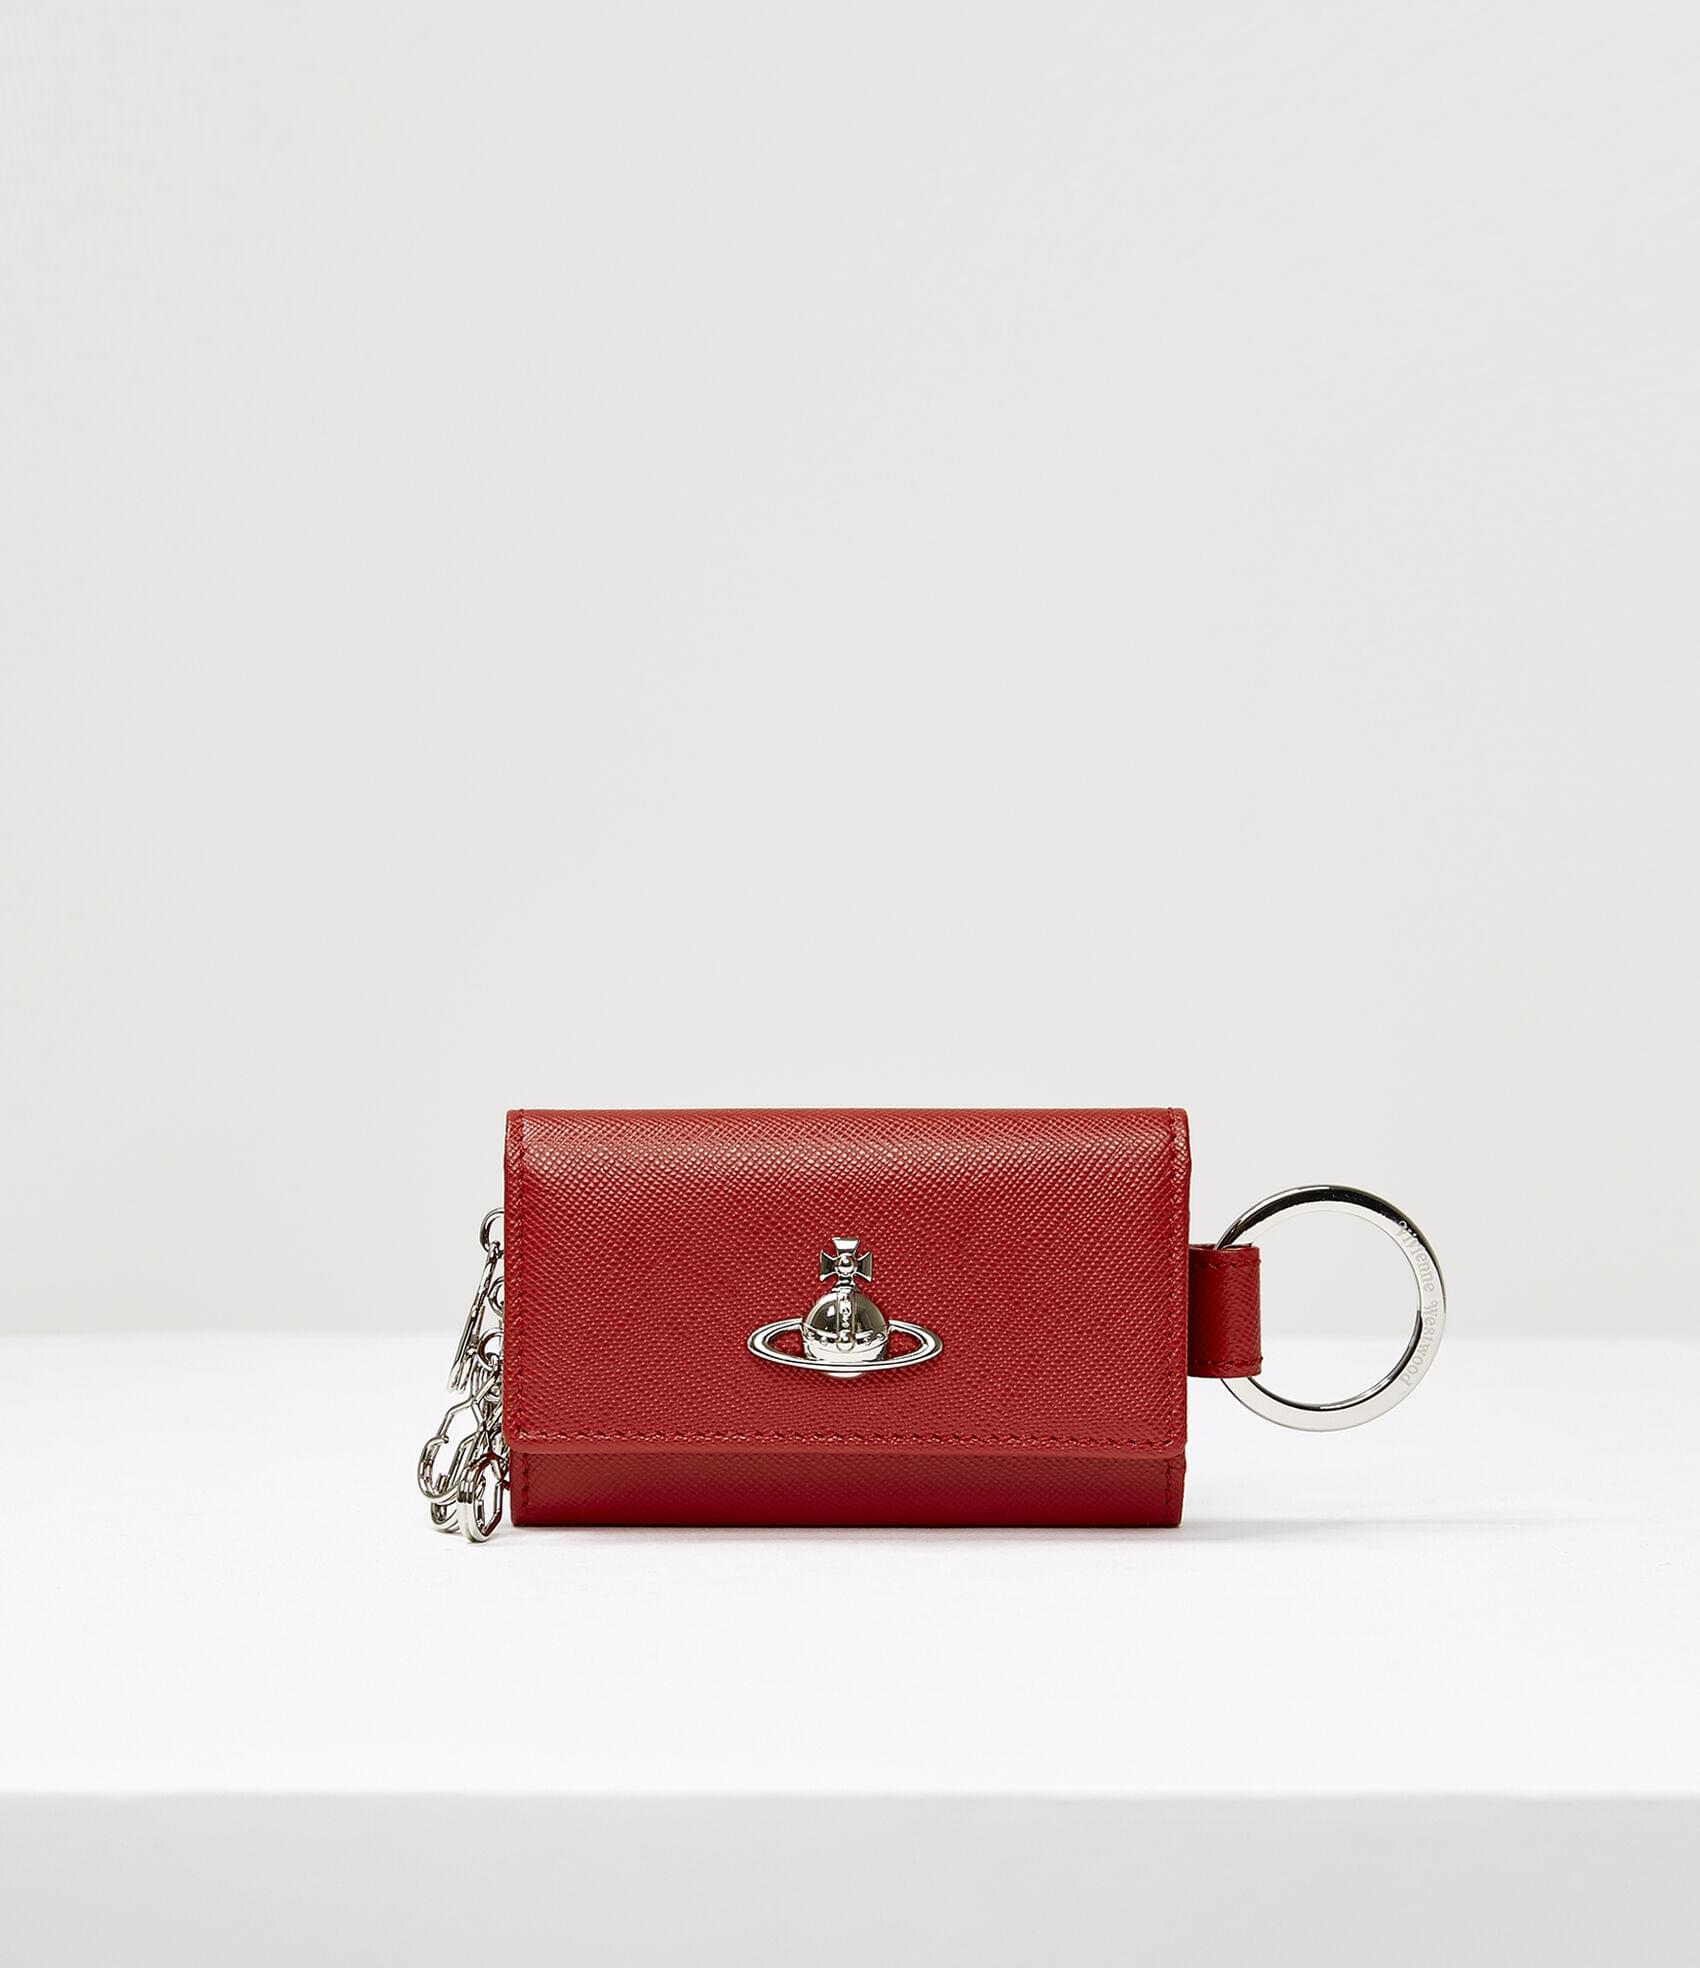 Vivienne Westwood PIMLICO KEY WALLET RED